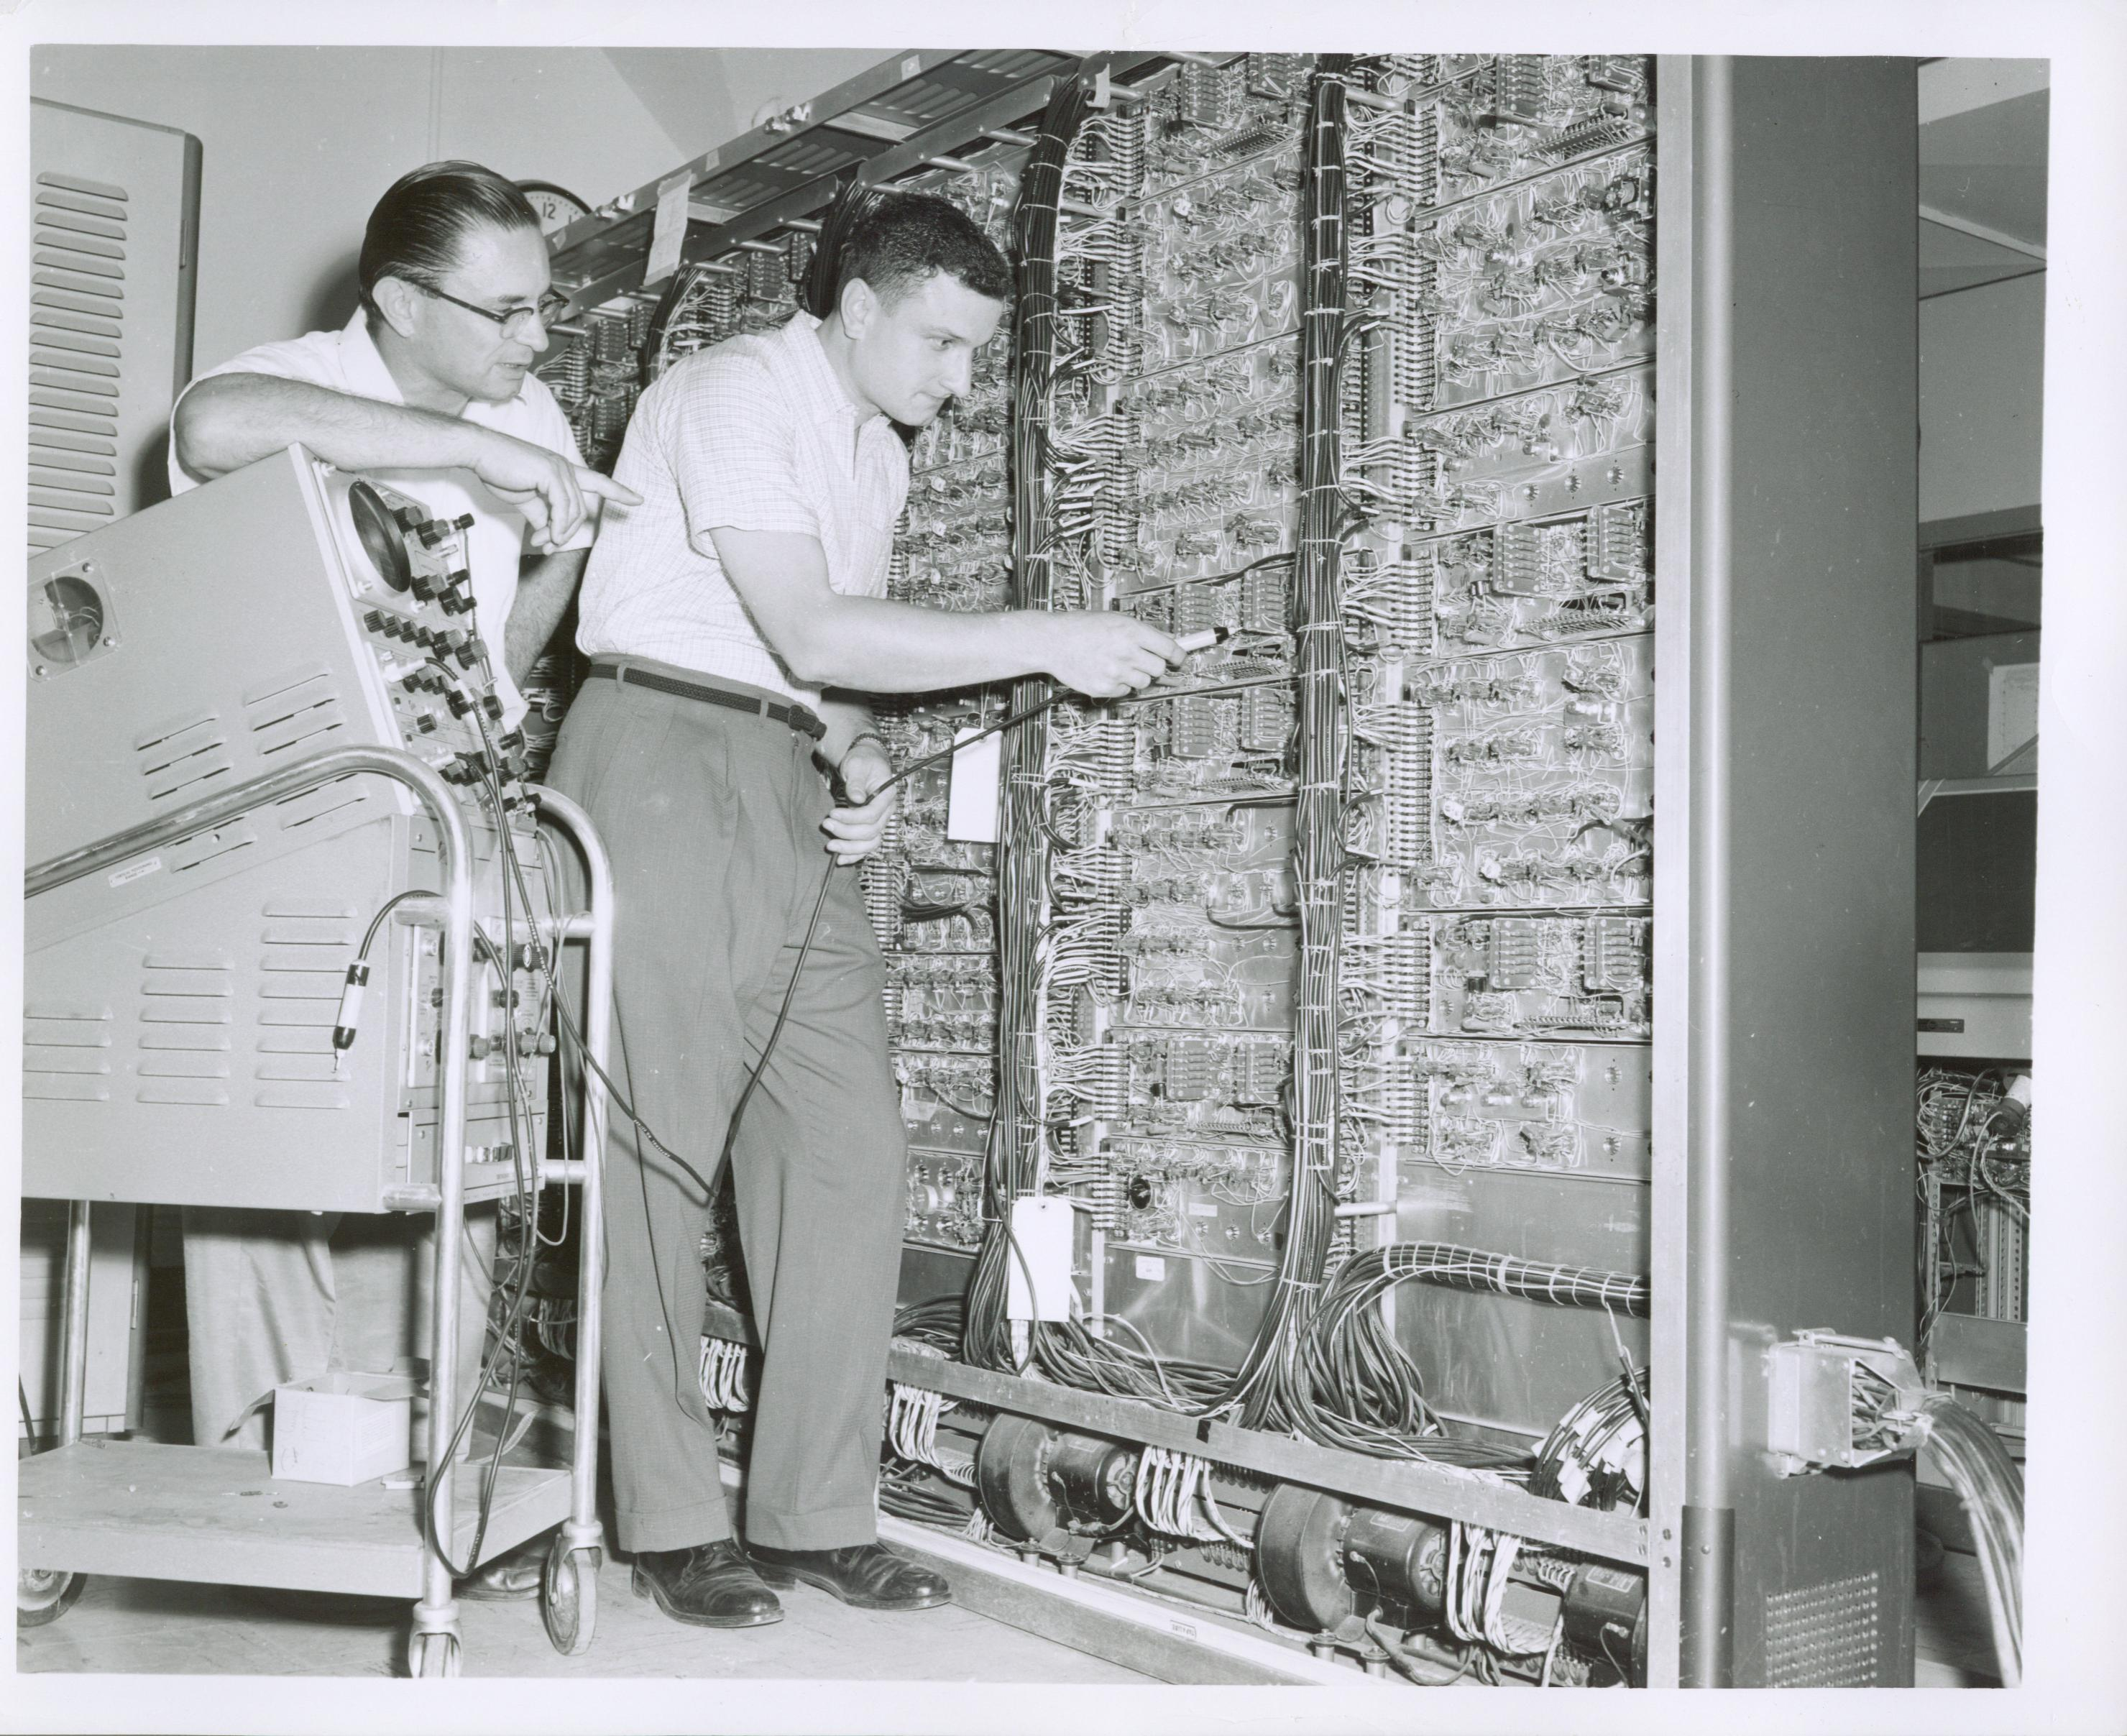 two men testing electrical components of a Census bureau computer, 1950s